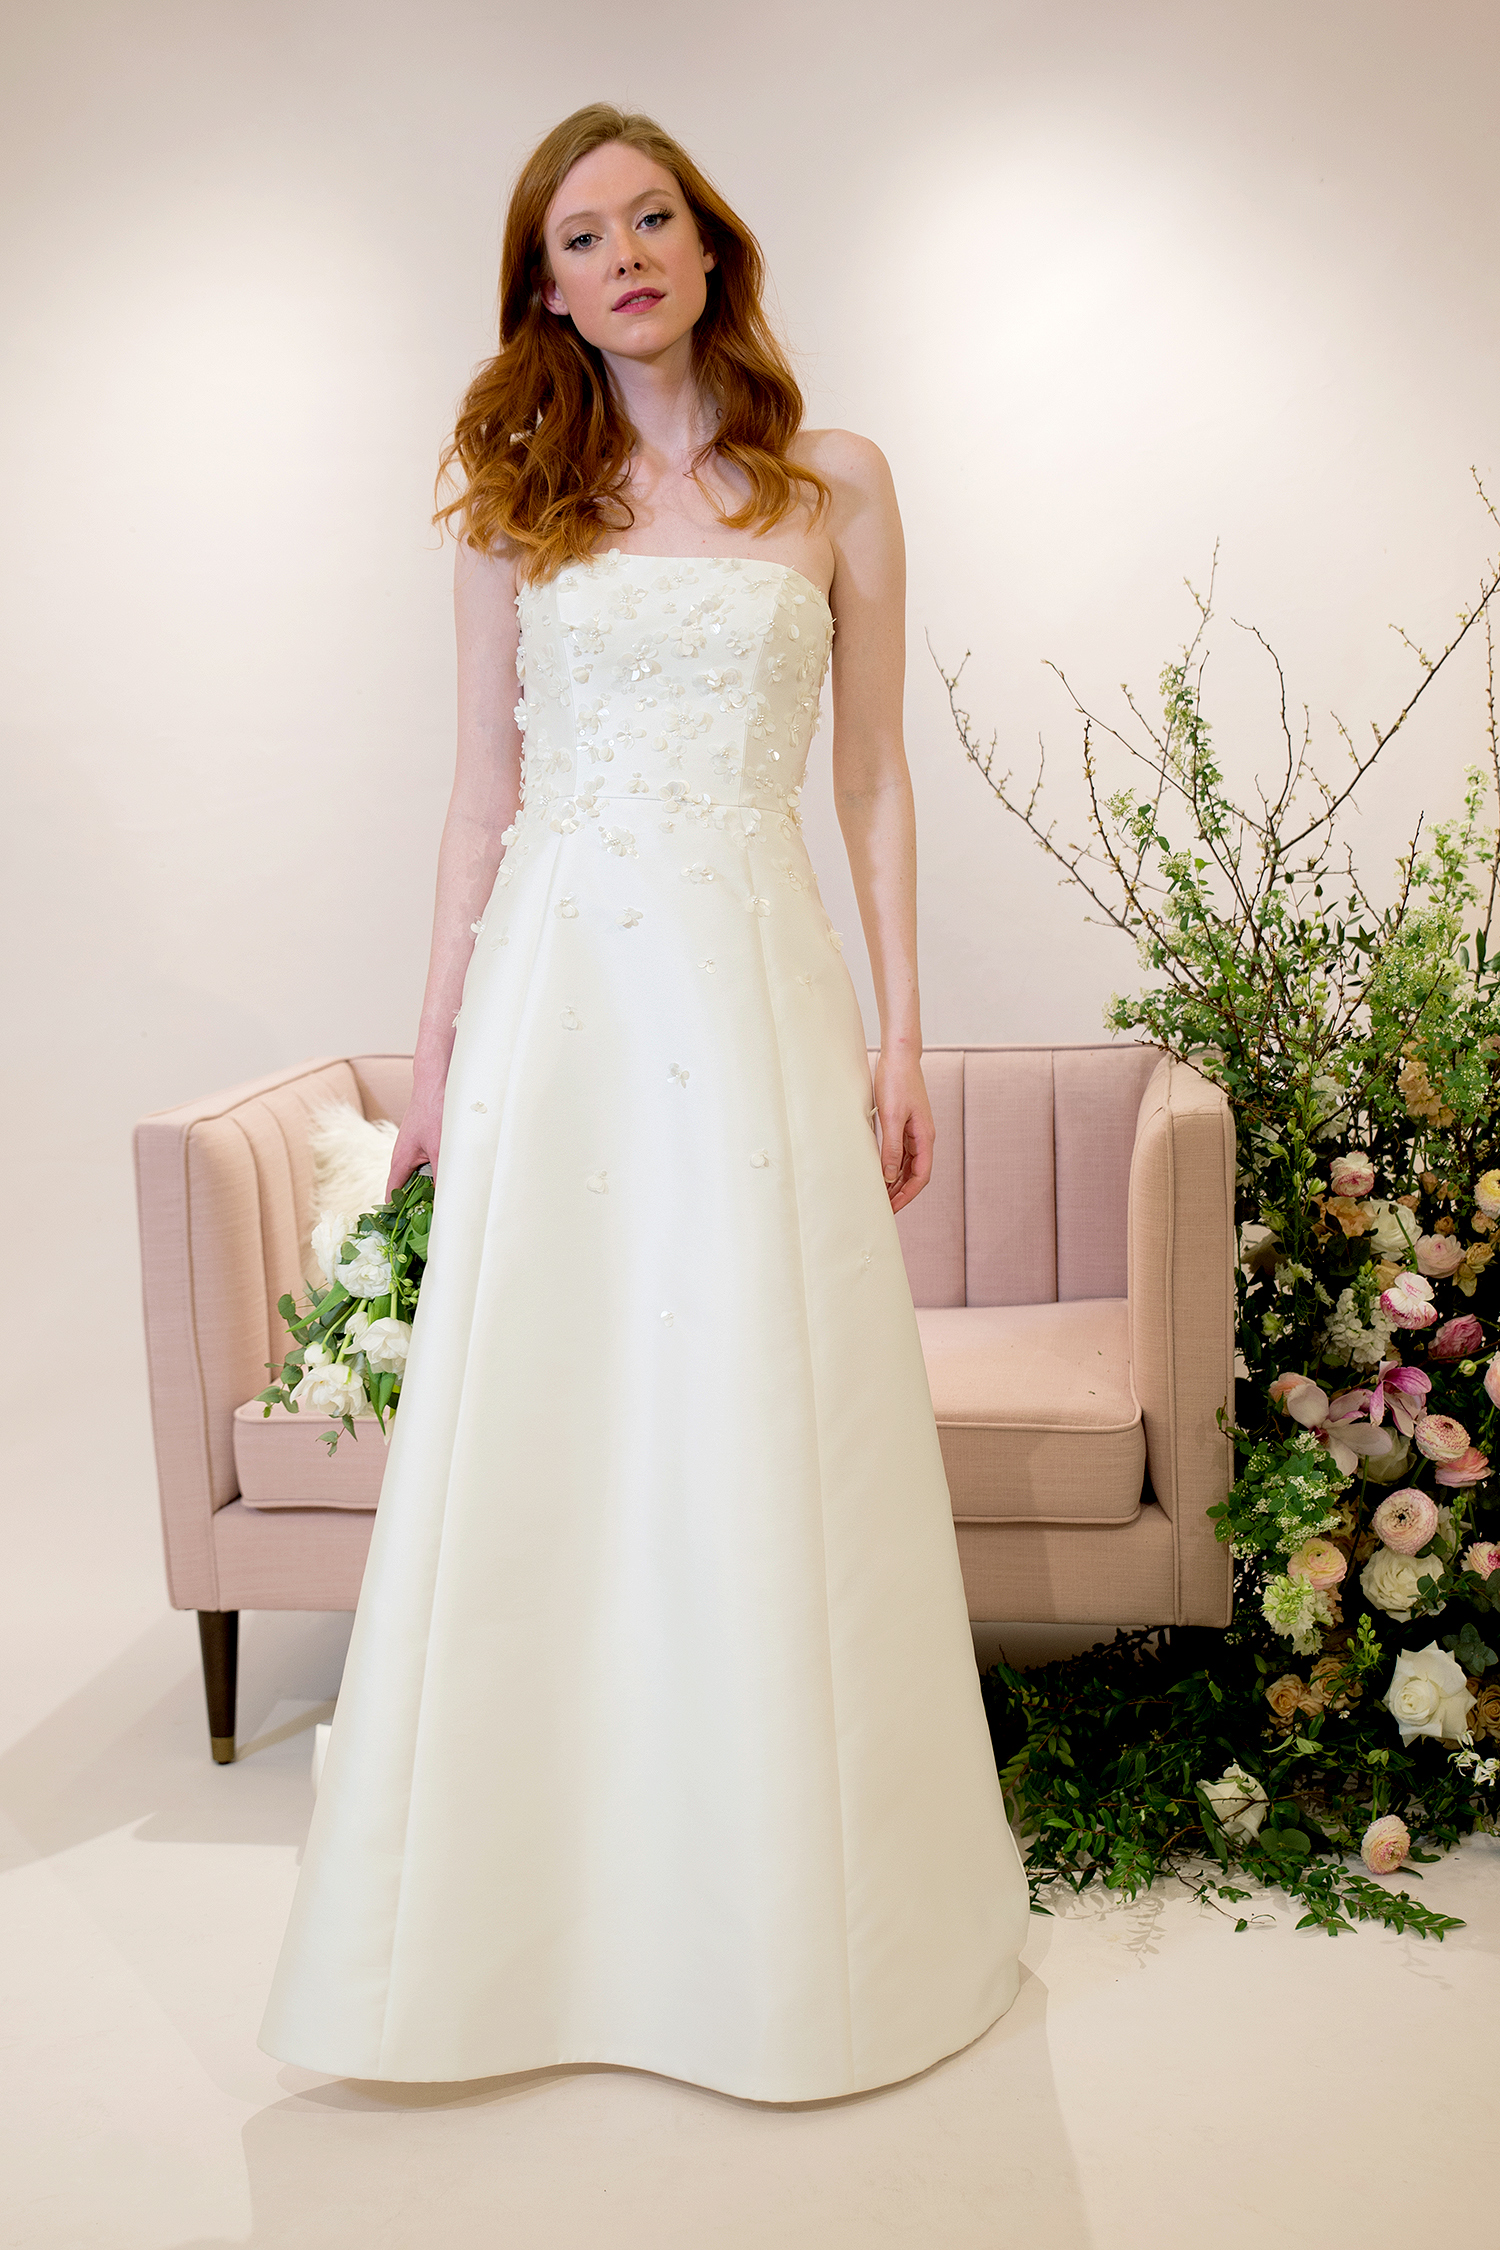 jenny by jenny yoo dress spring 2019 strapless a-line with appliques